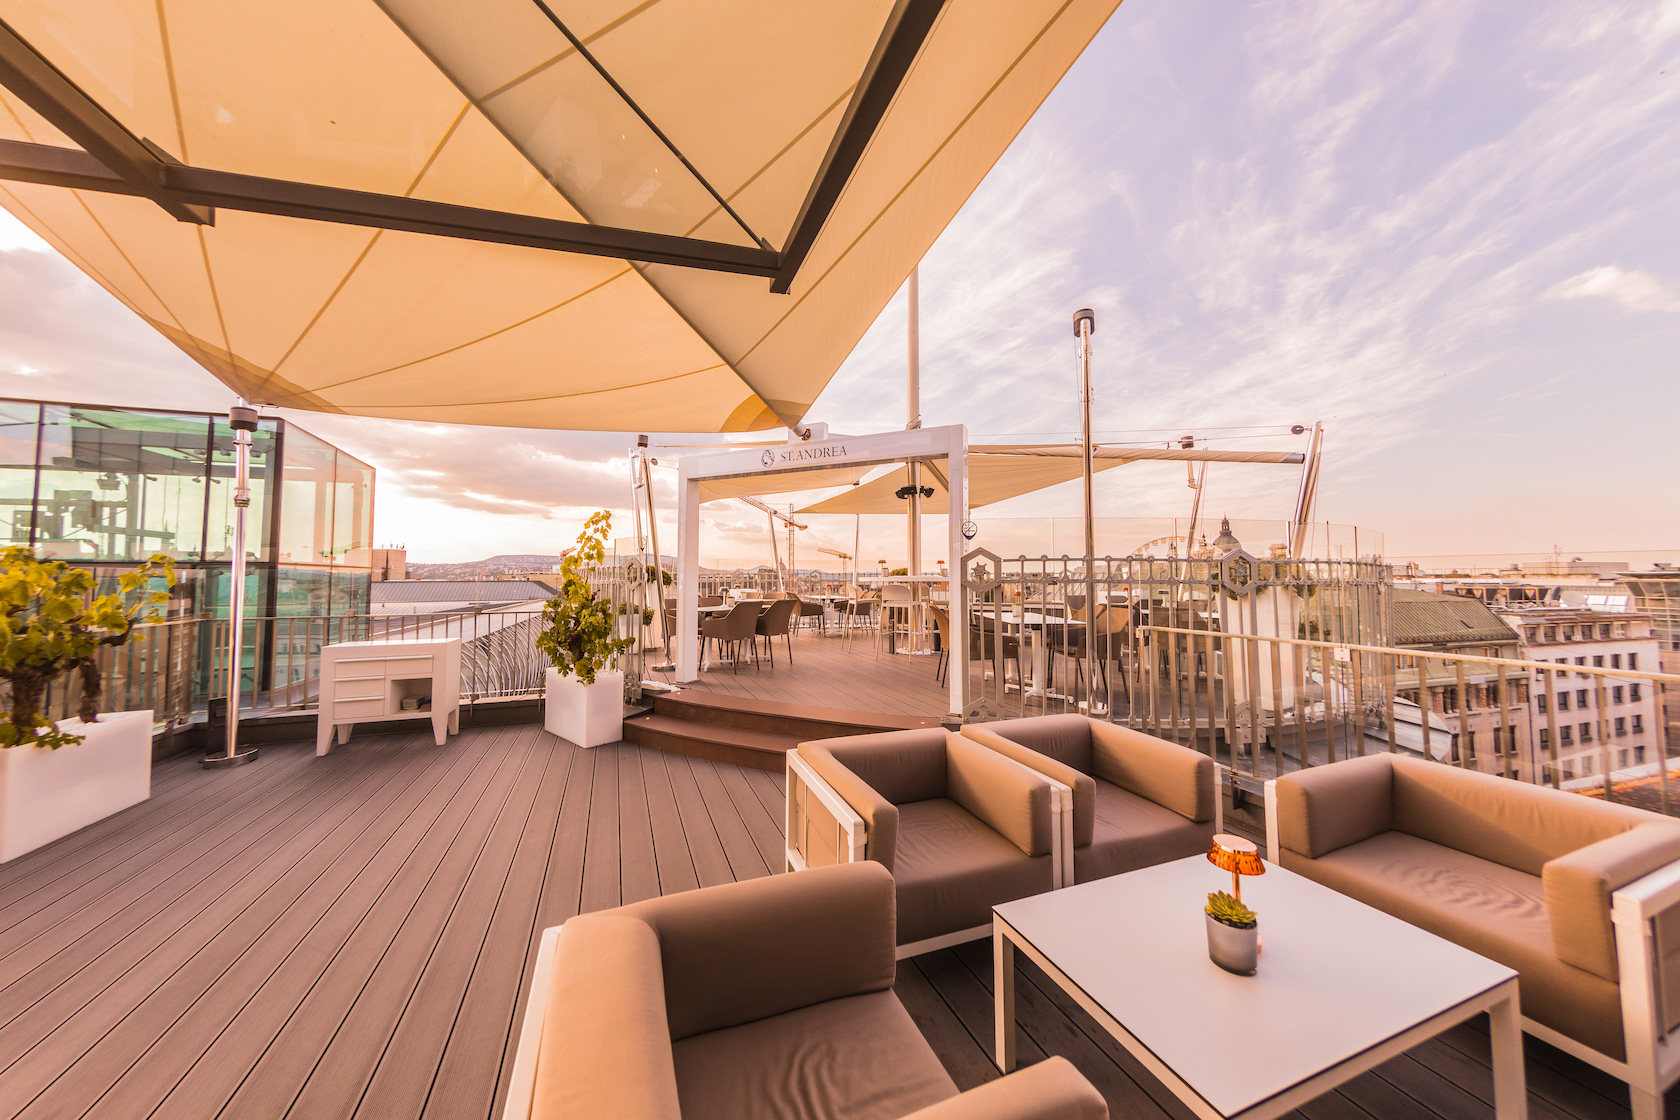 St. Andrea Wine and Skybar